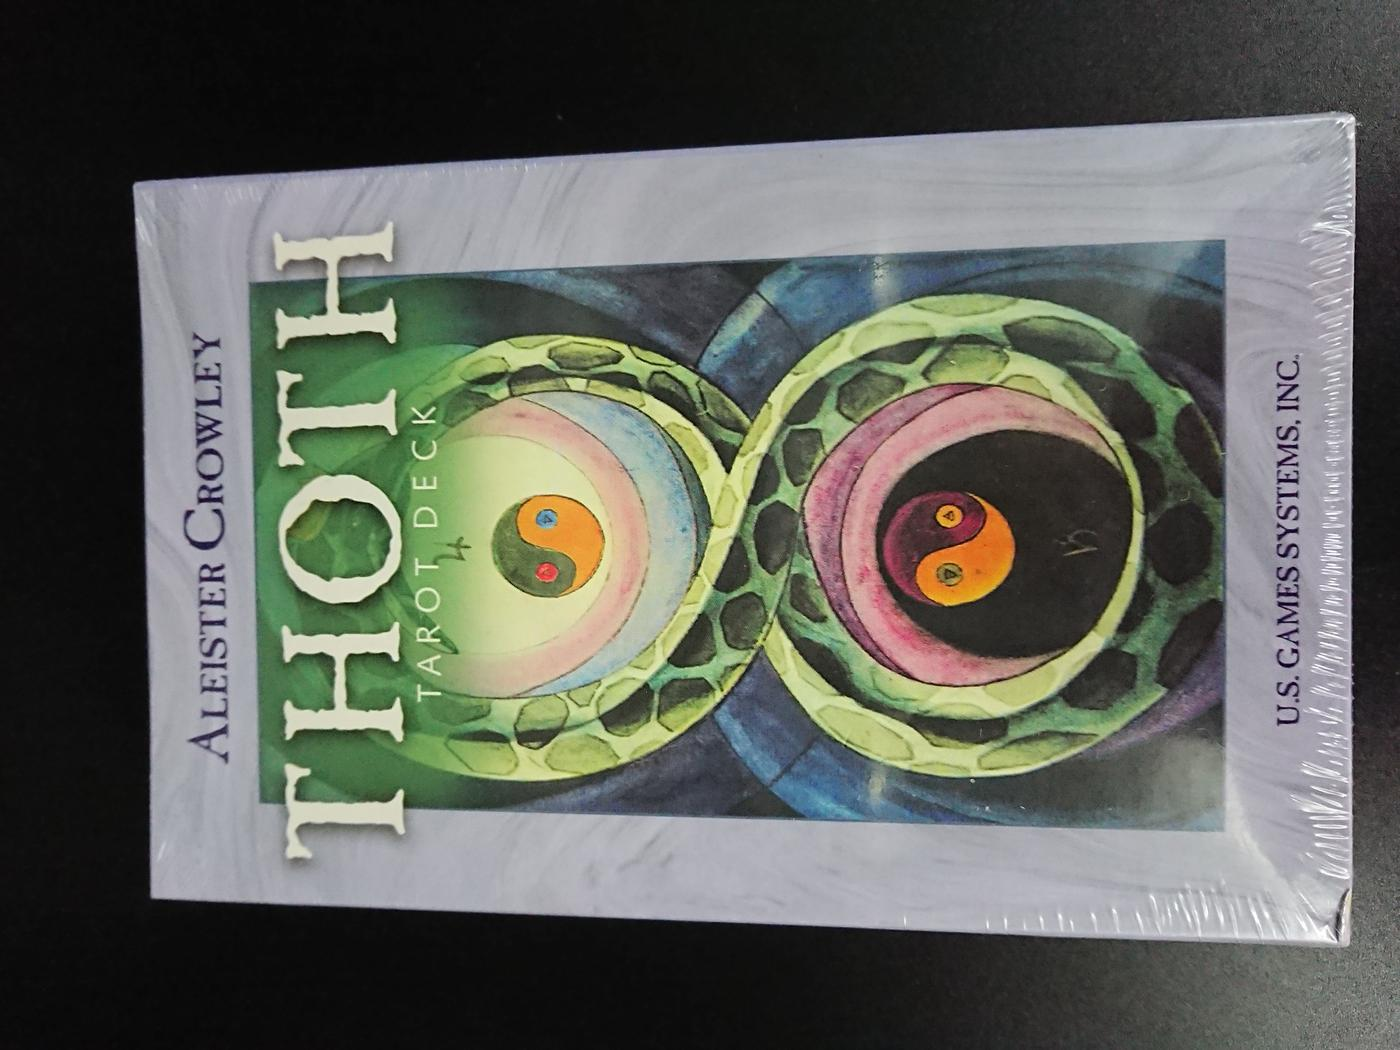 Aleister Crowley Thoth Tarot Delux Set